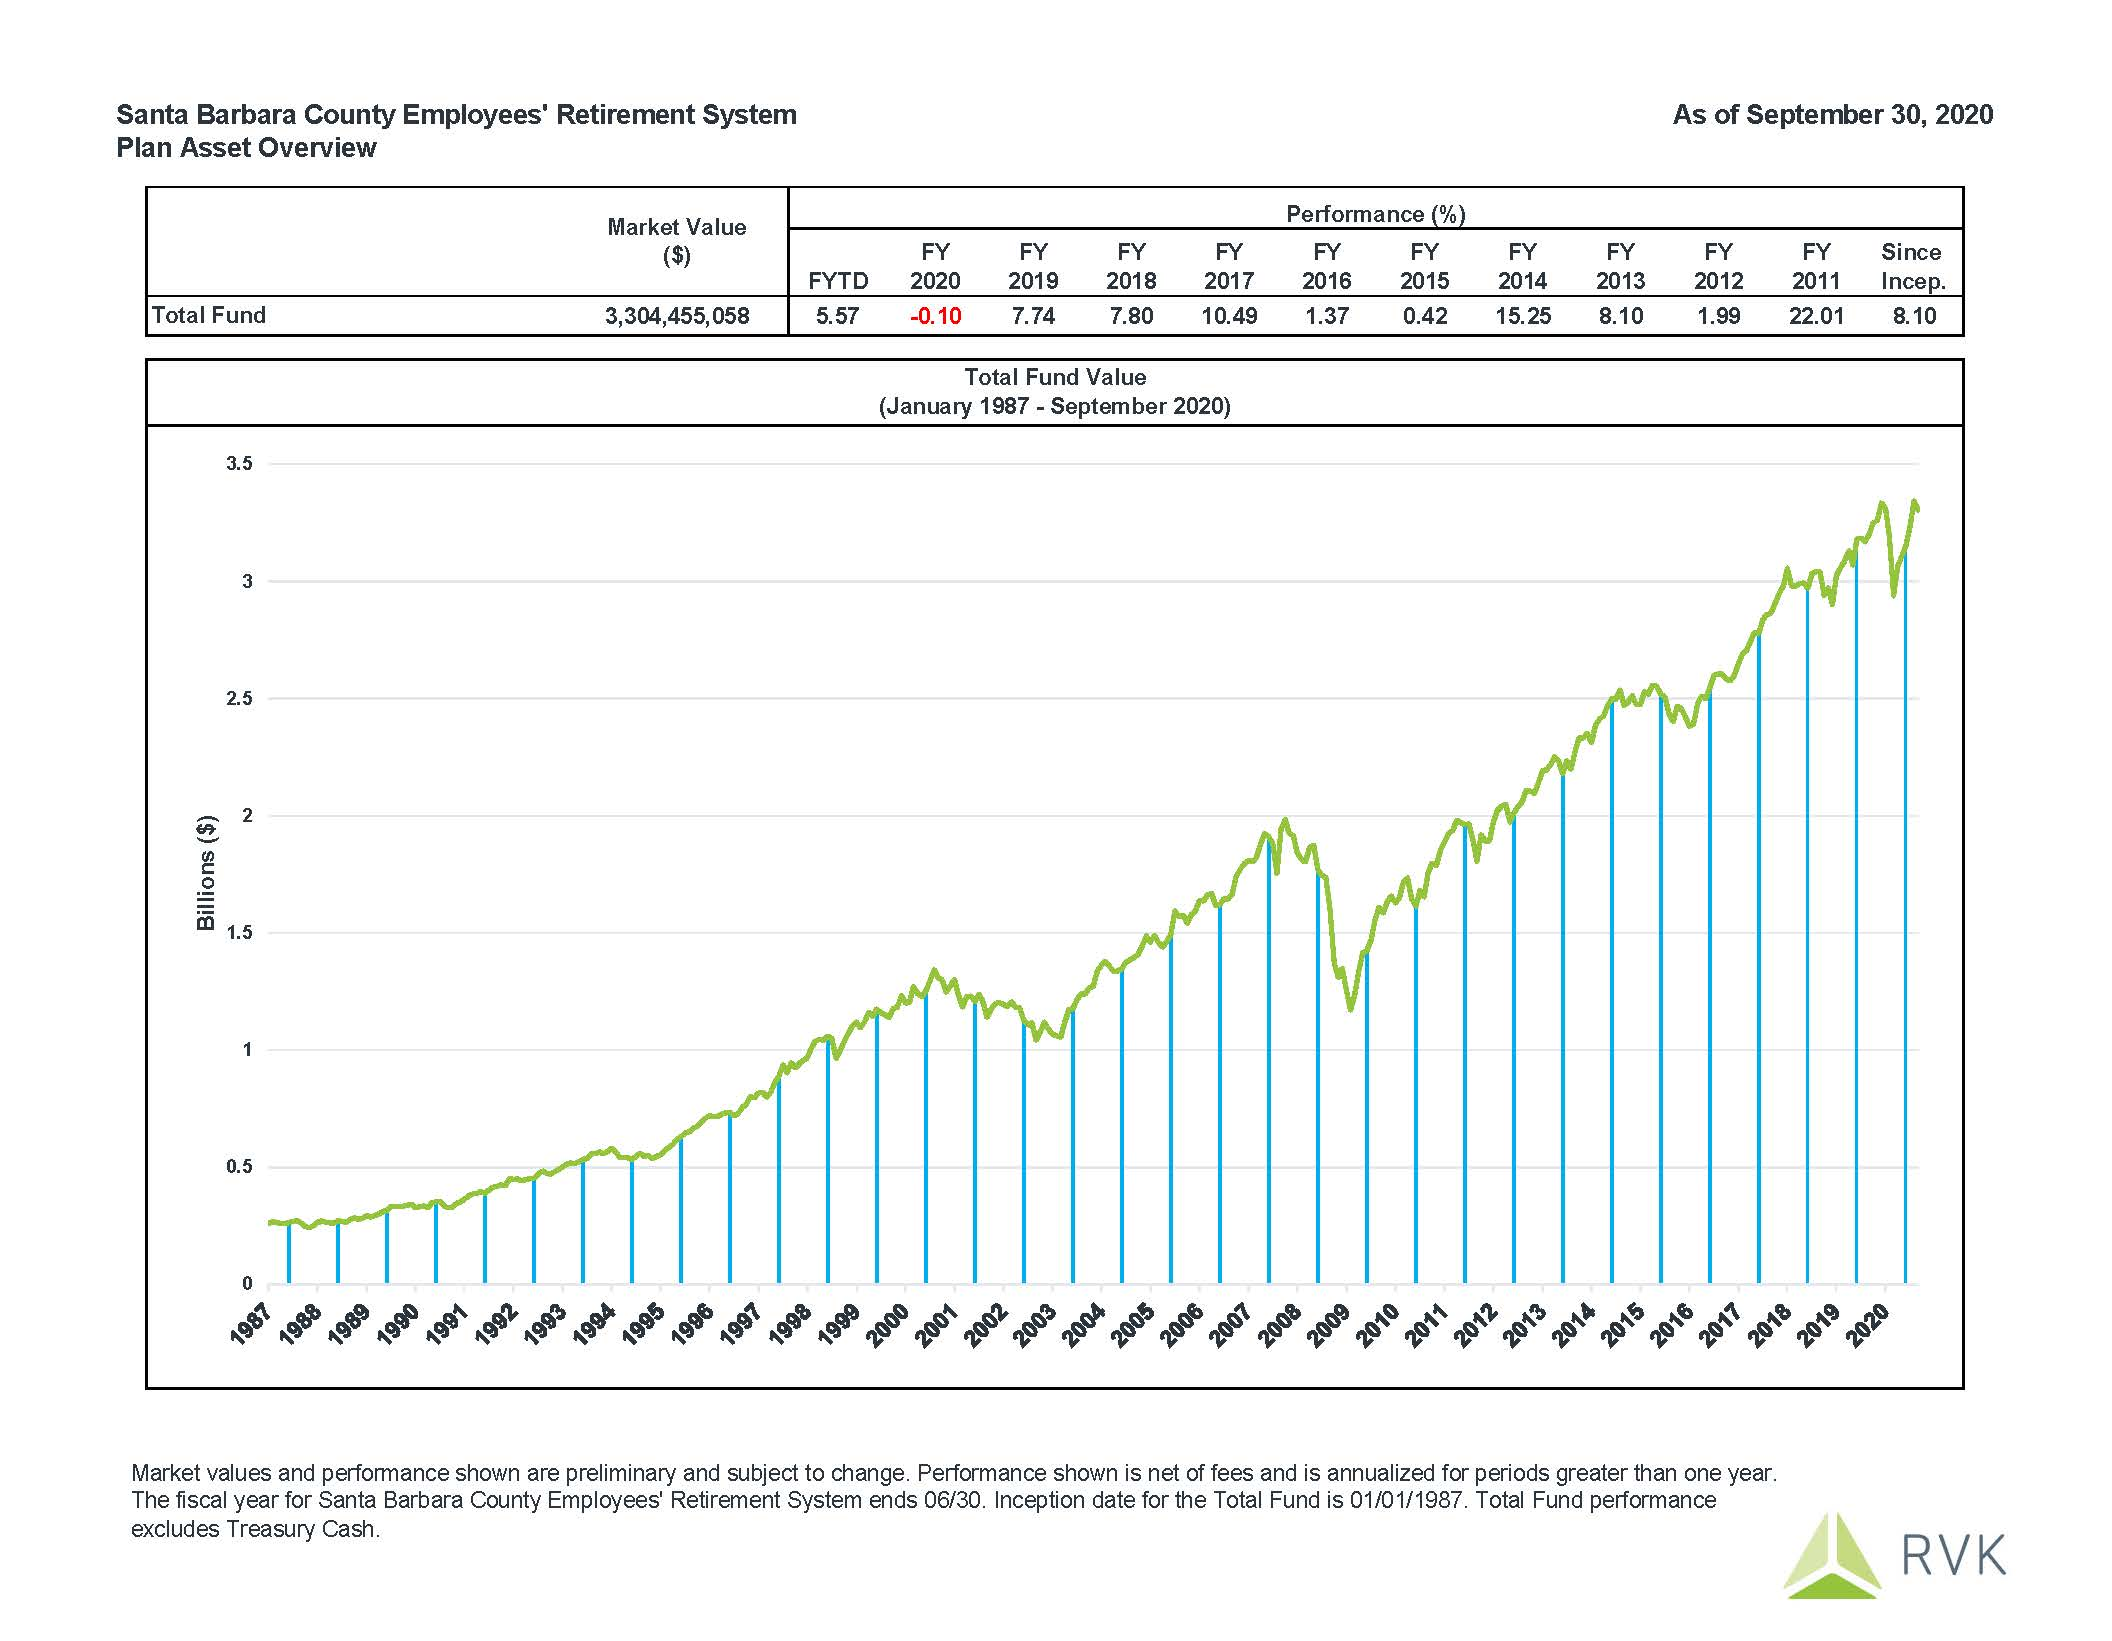 September 2020 Fund Performance: Fiscal Year to Date performance is 5.57%.